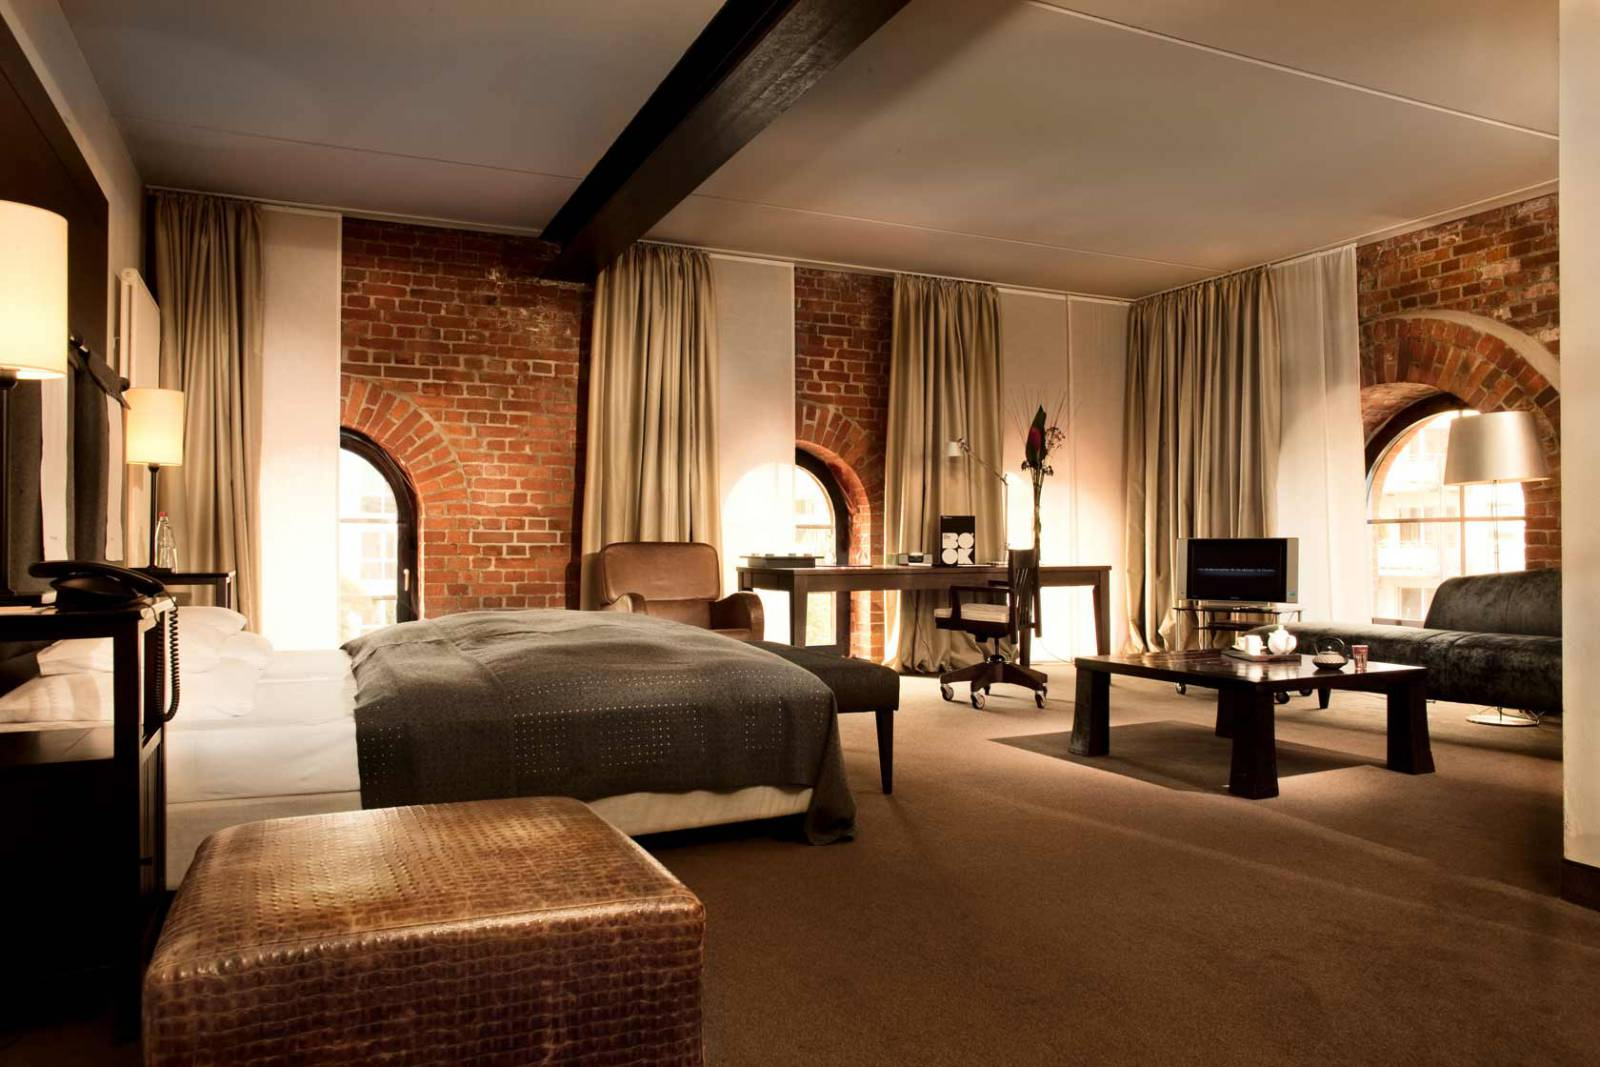 un hotel in stile loft ad amburgo in the mood for design. Black Bedroom Furniture Sets. Home Design Ideas